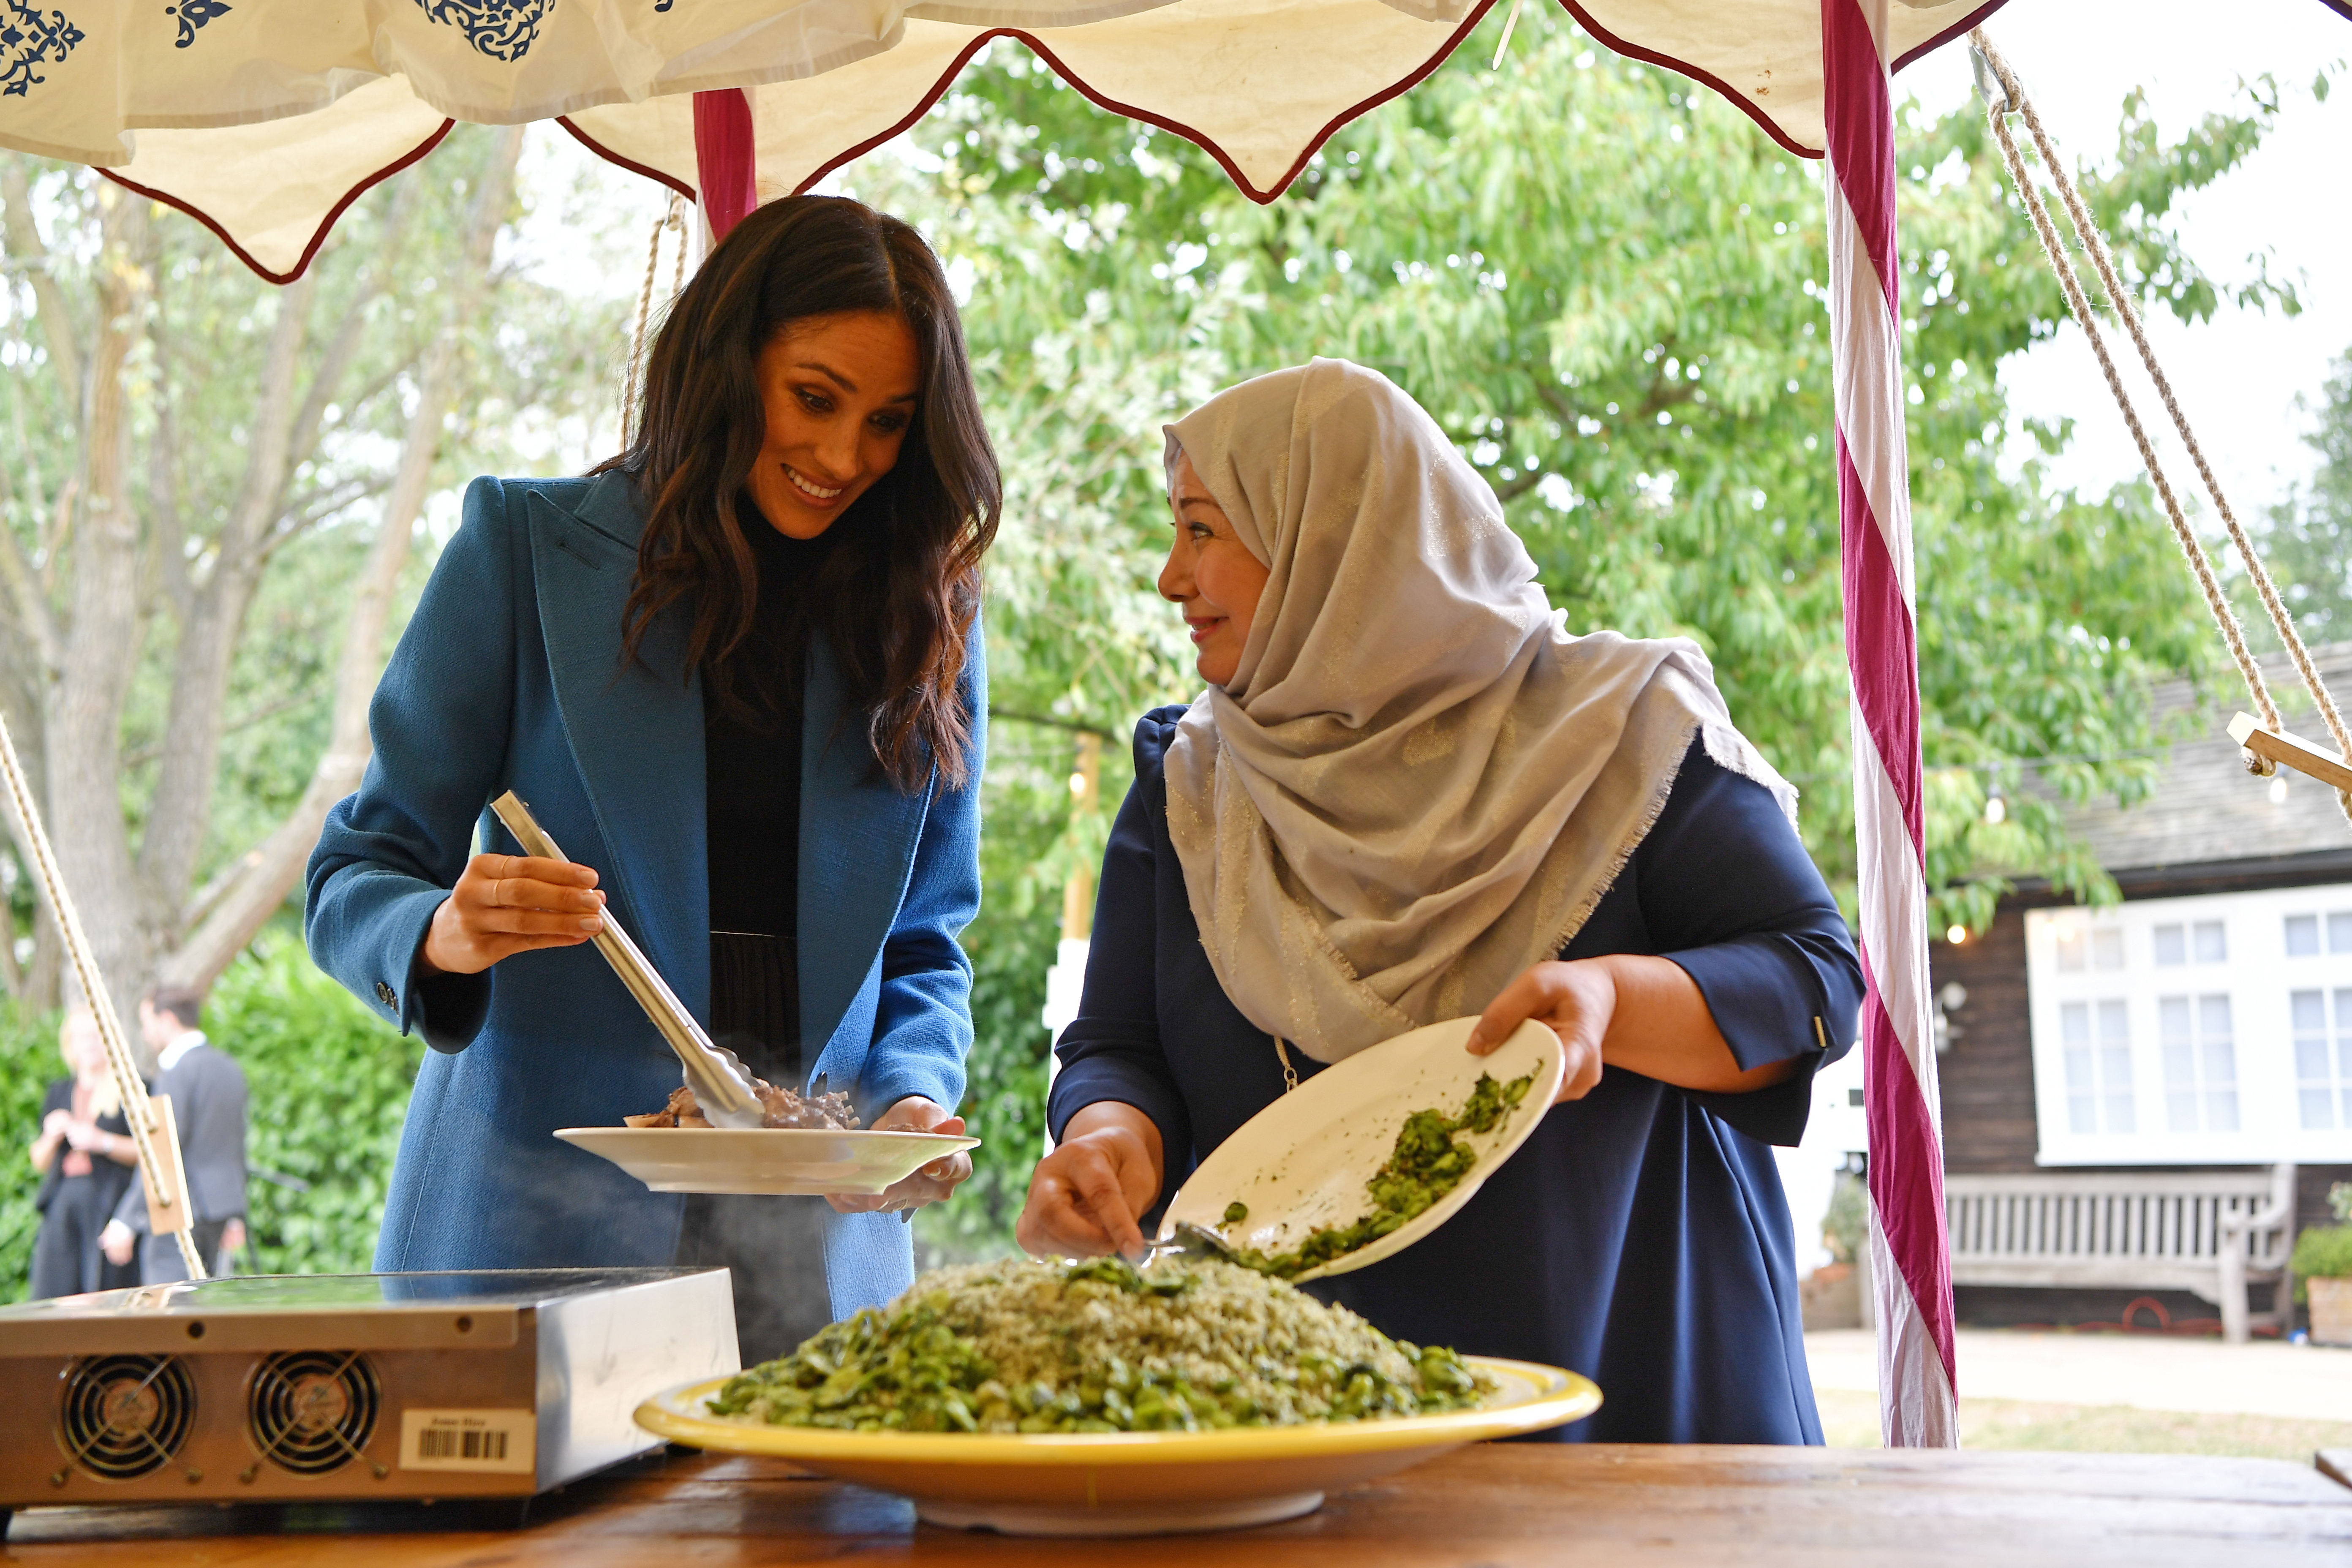 Meghan, Duchess of Sussex helps to prepare food at an event to mark the launch of a cookbook with recipes from a group of women affected by the Grenfell Tower fire at Kensington Palace on September 20, 2018 in London, England.